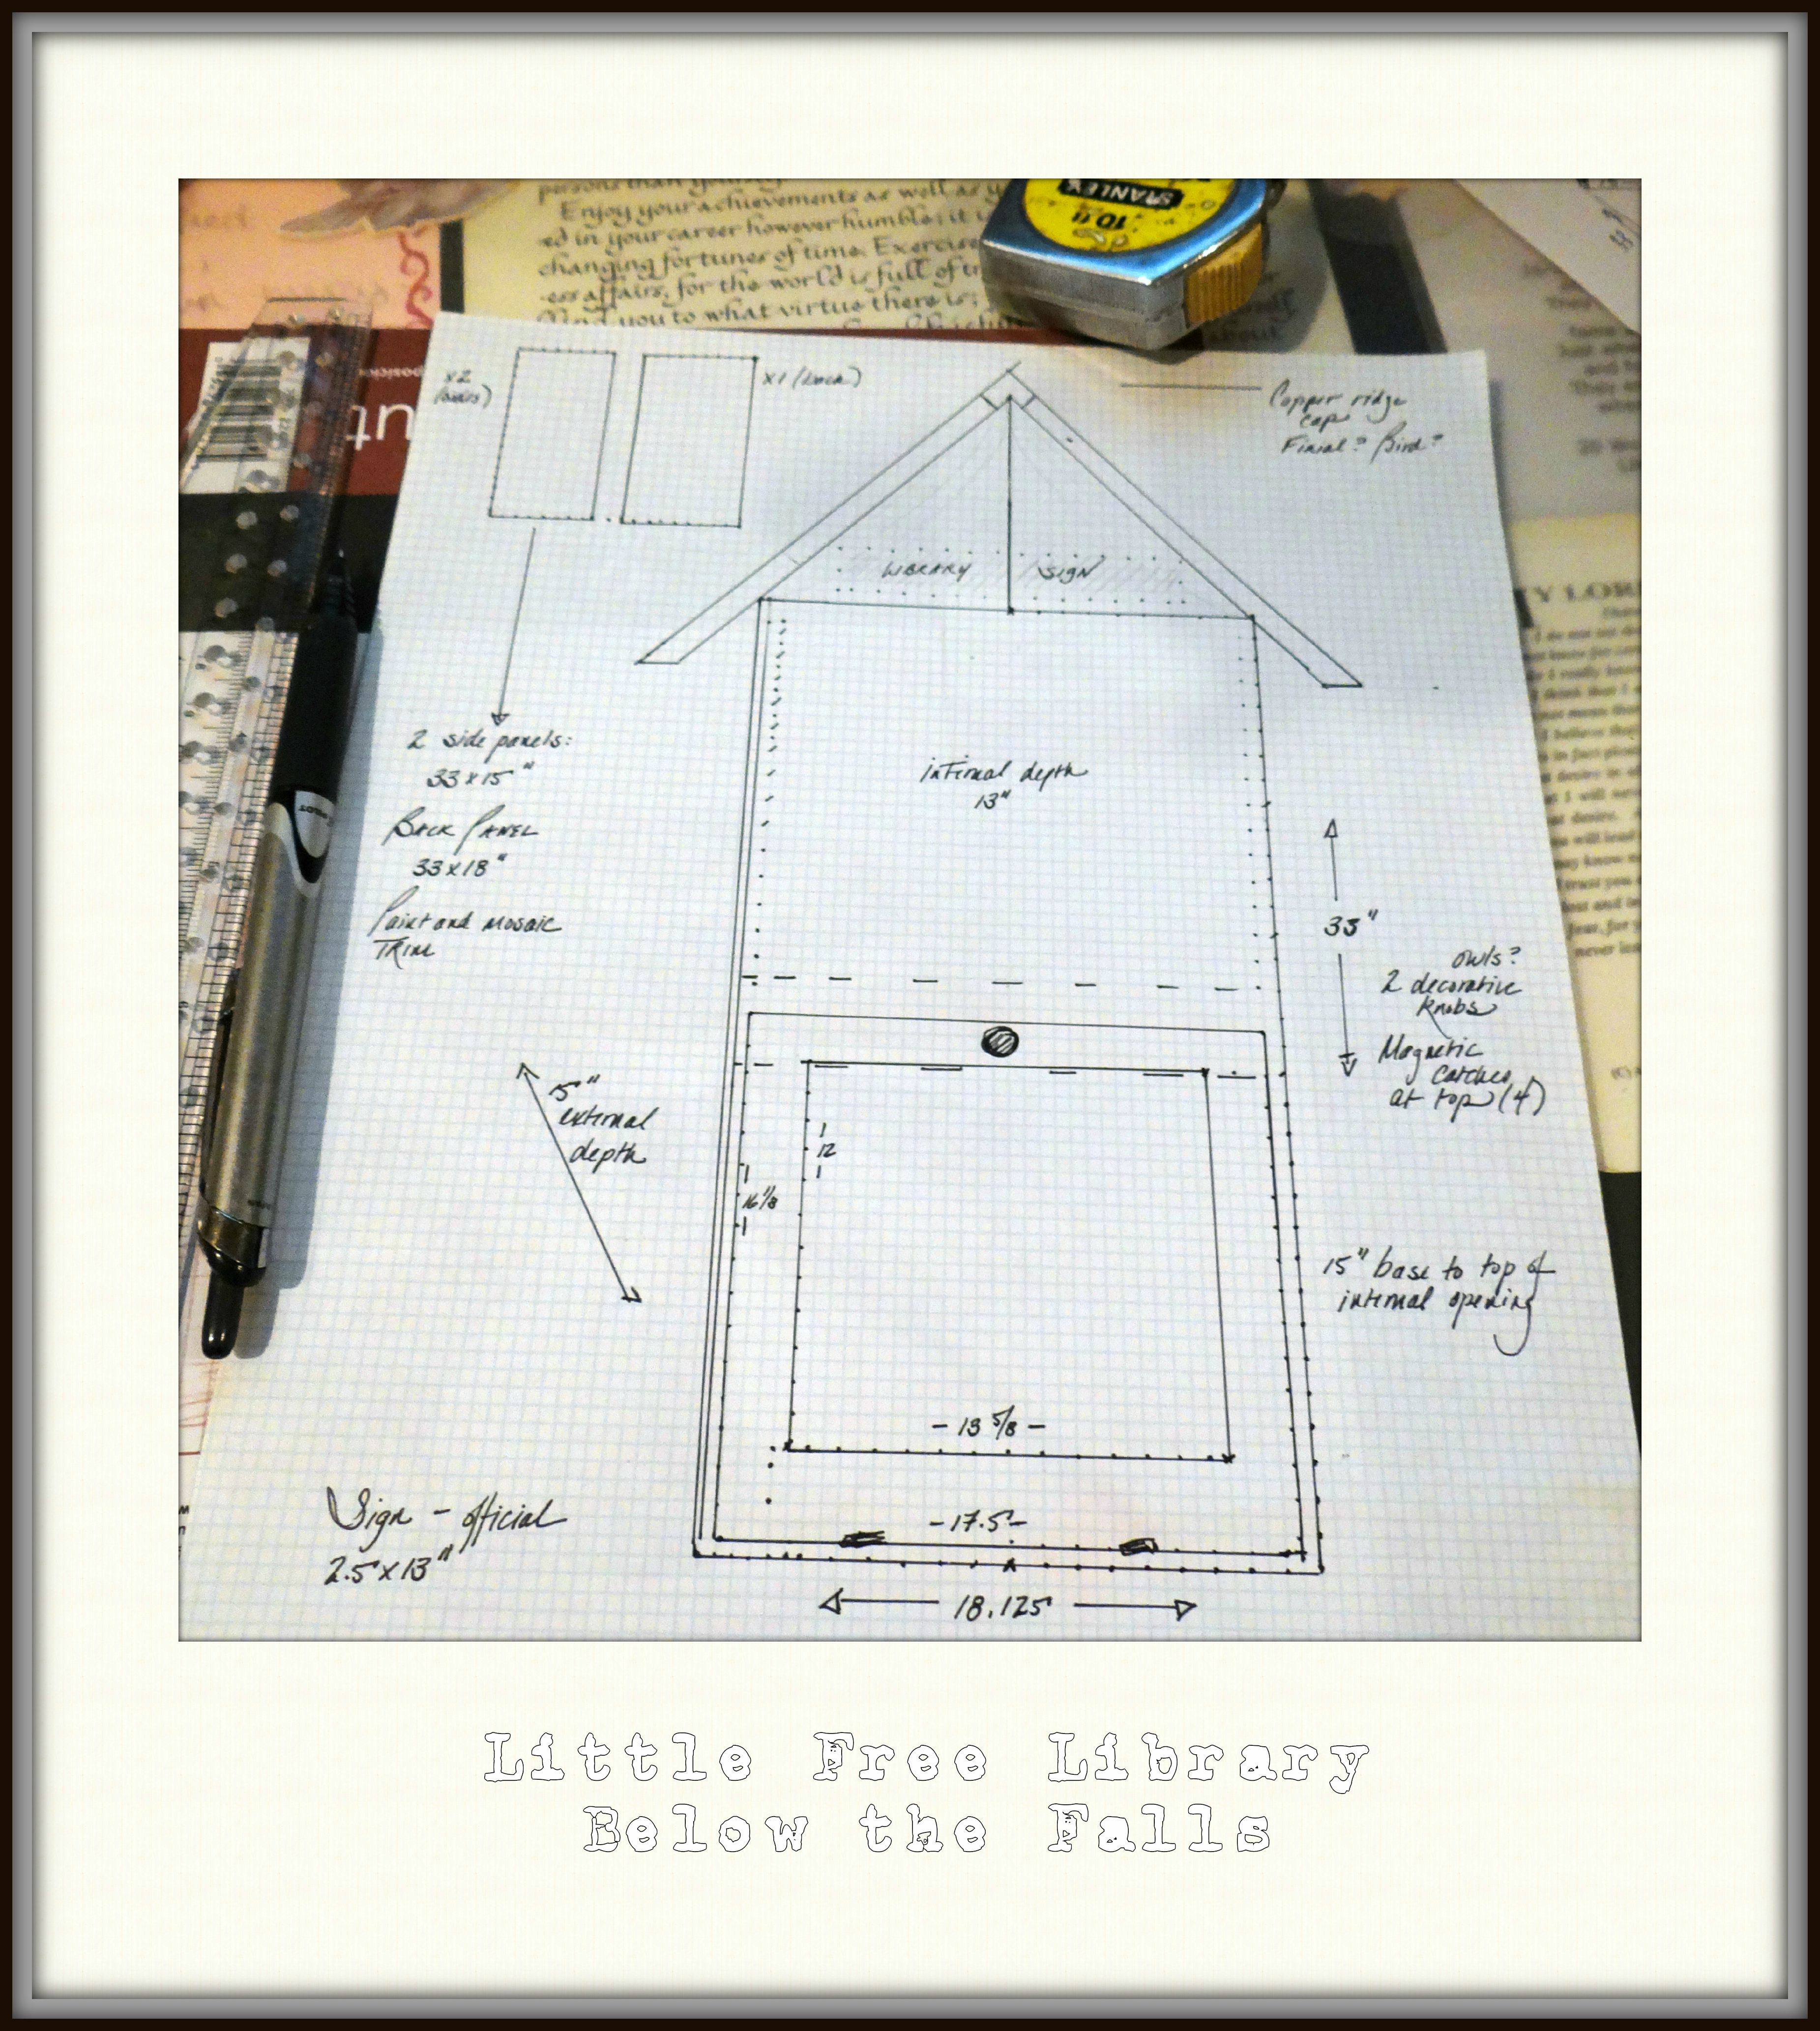 The pros and cons of wooden kitchen cabinets smart tips - Portable Building Plans For A Cabinet